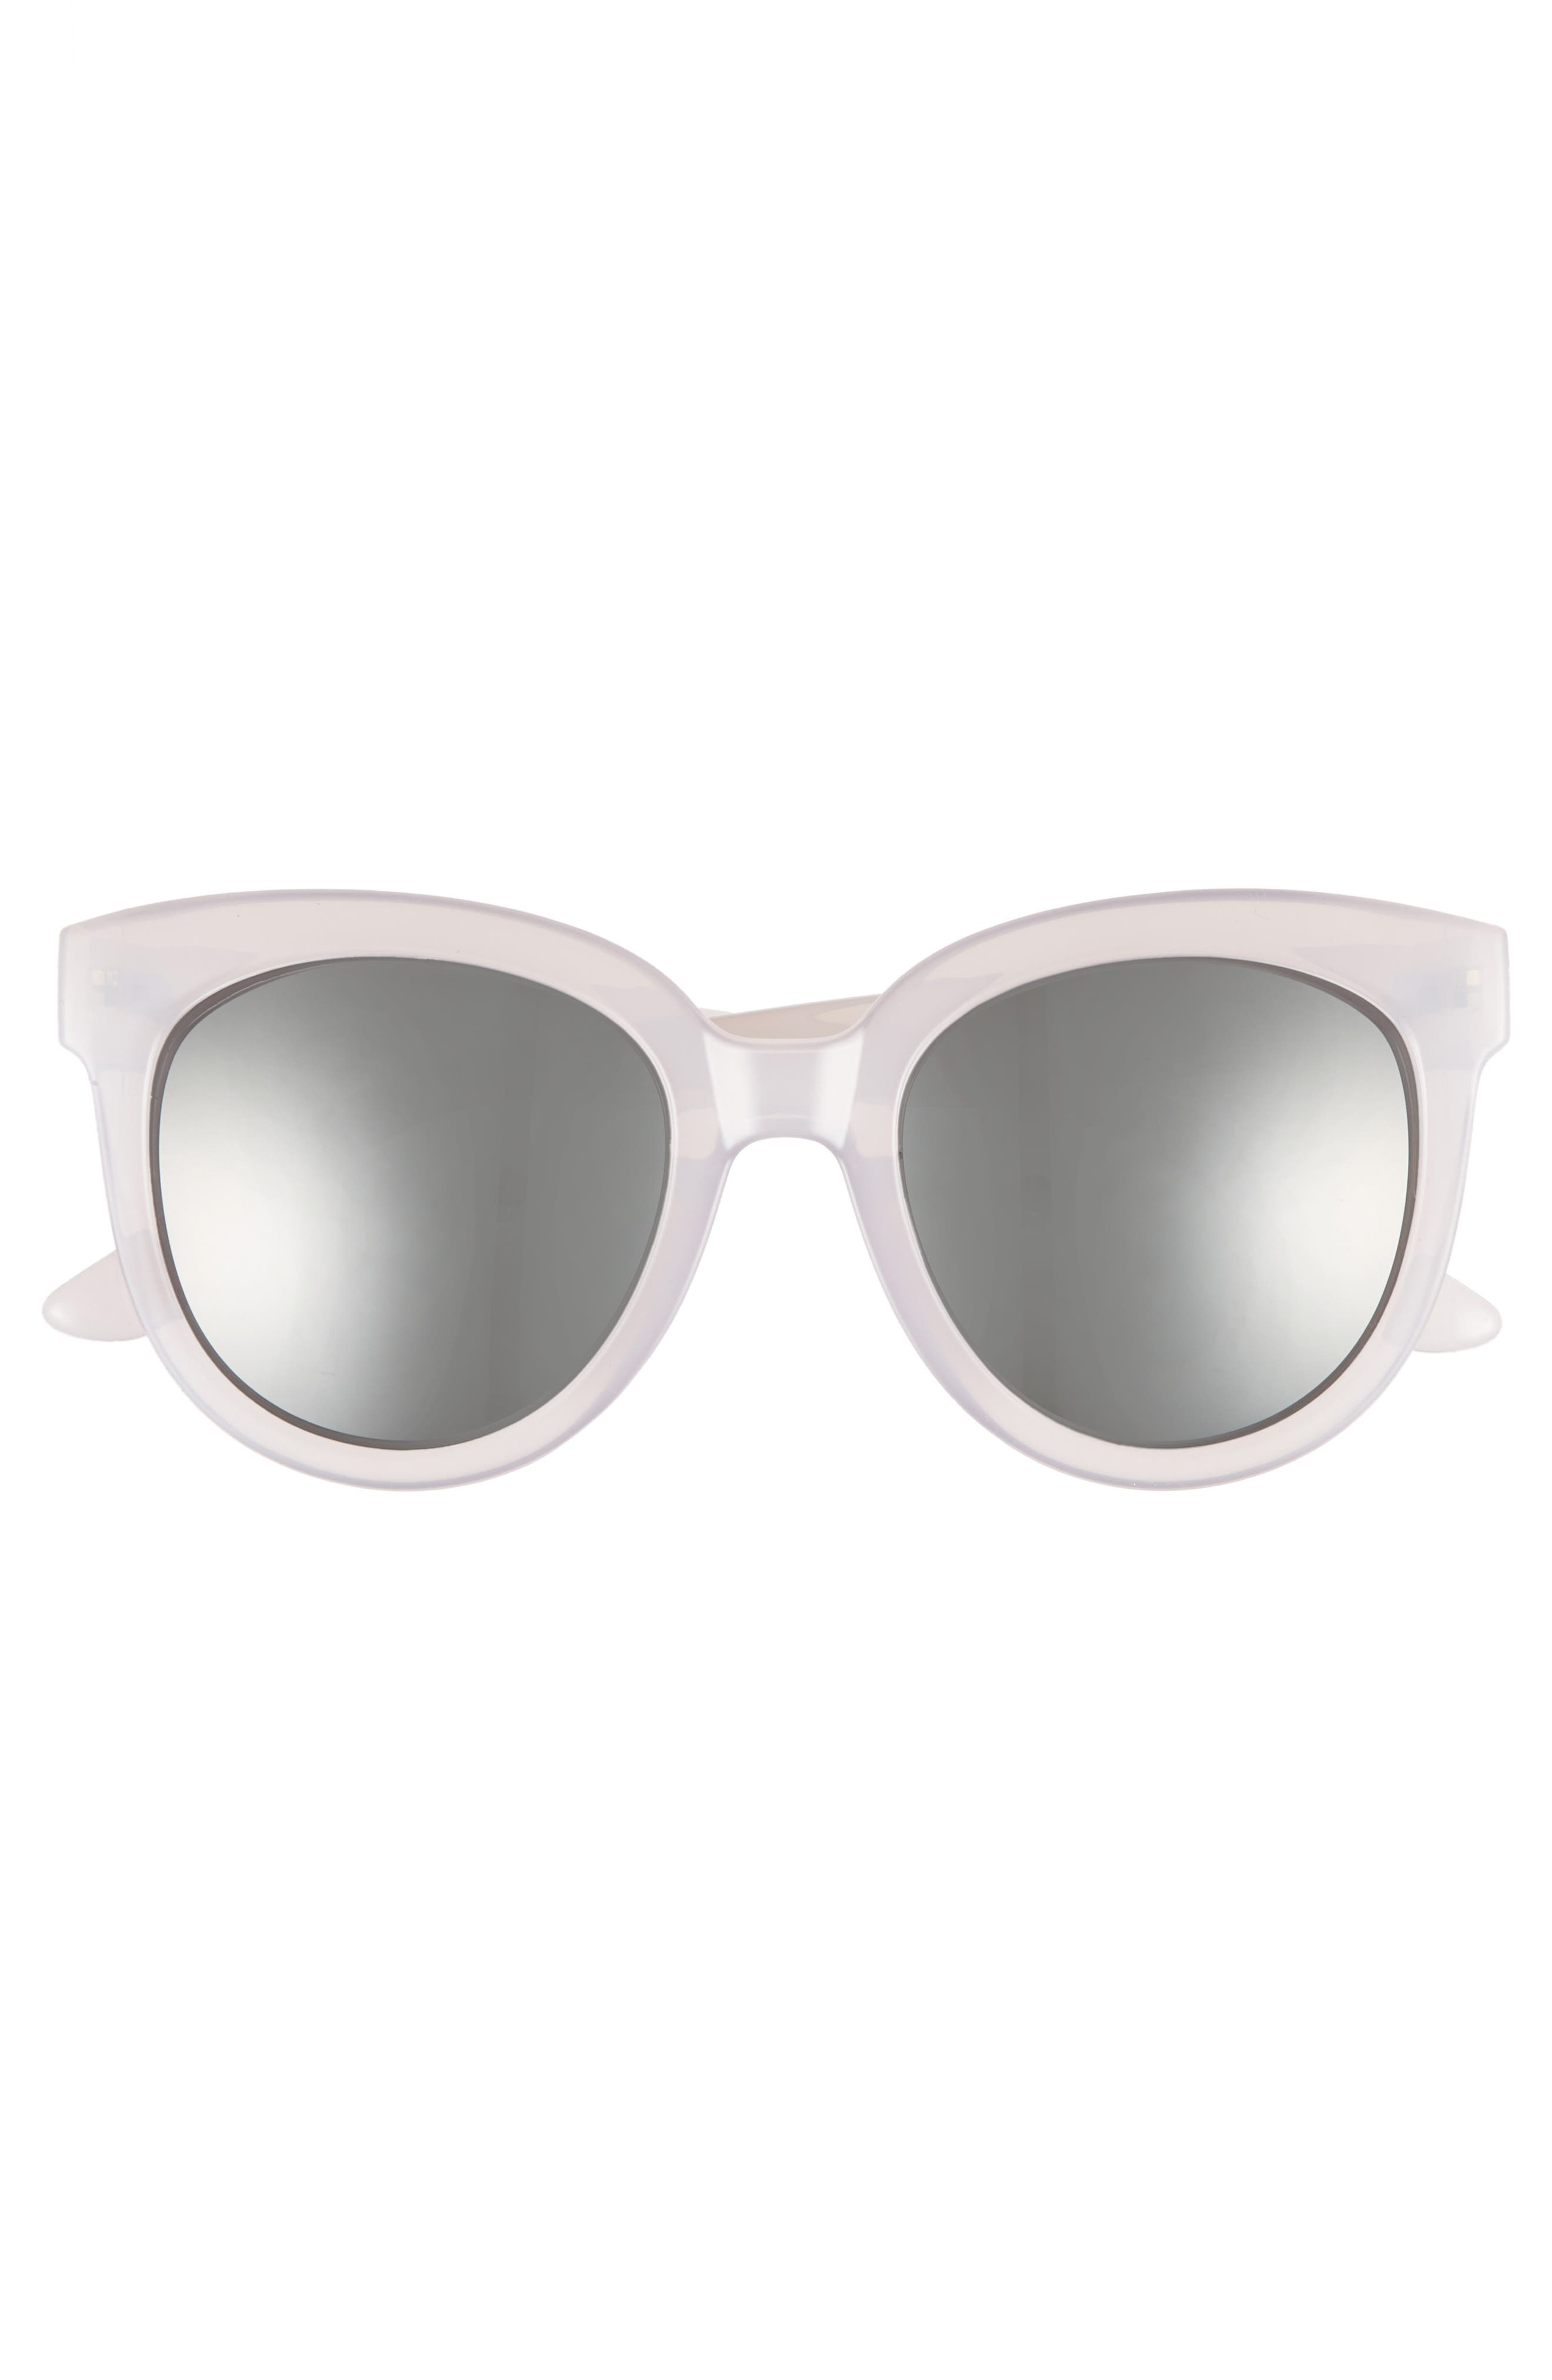 53mm Frosted Cat Eye Sunglasses,                             Alternate thumbnail 3, color,                             050